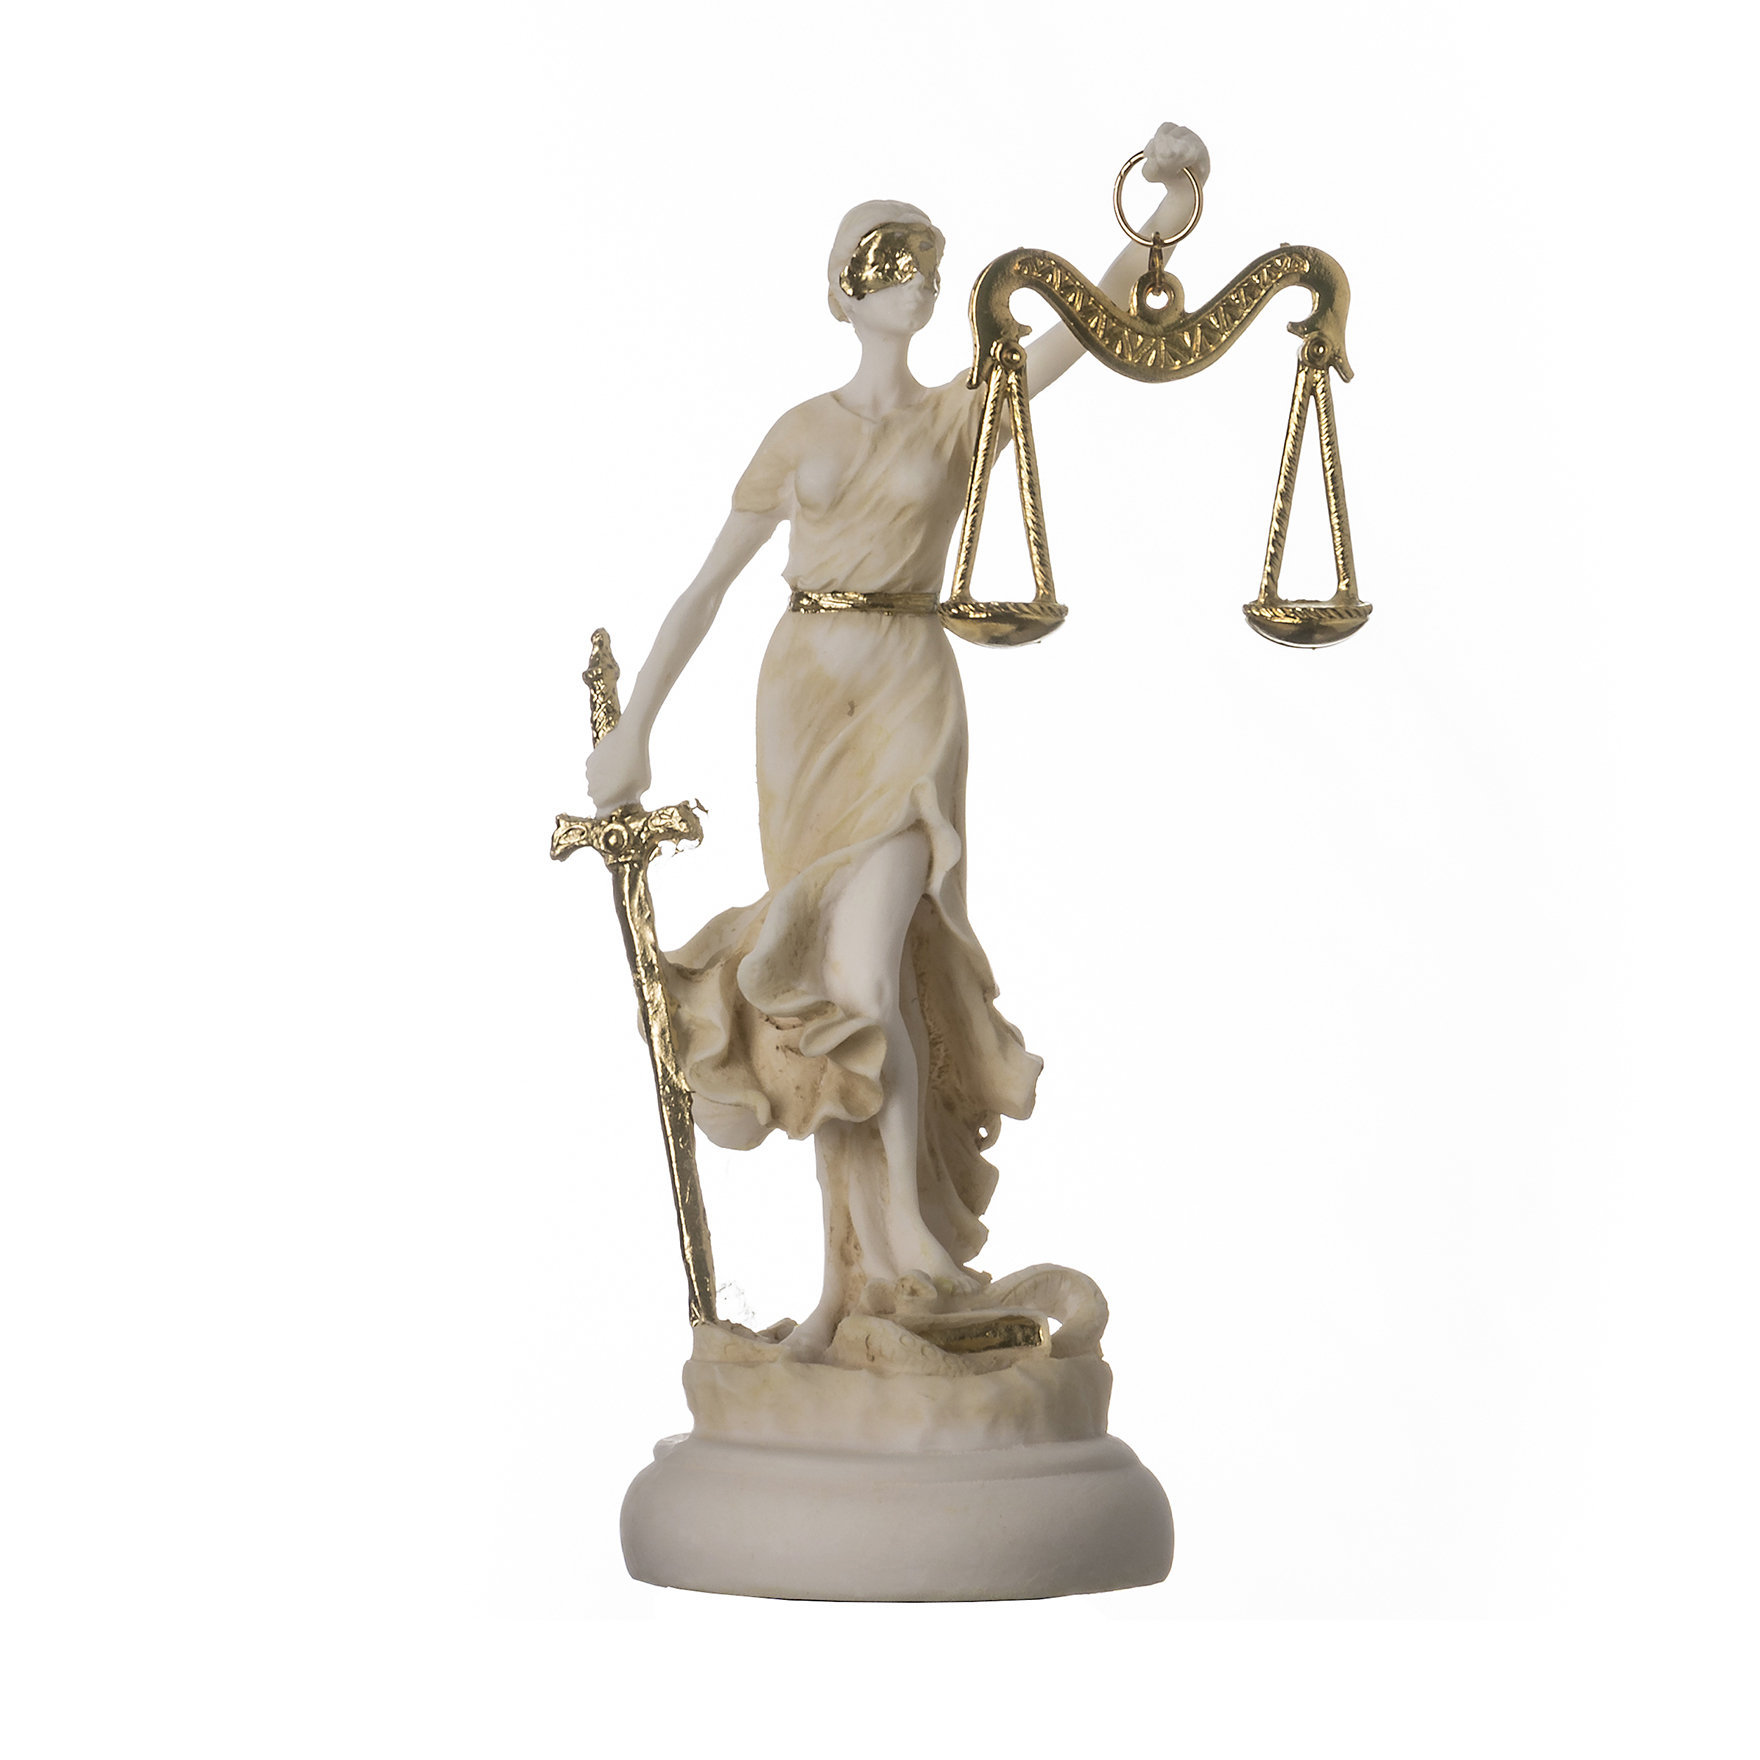 "Greek goddess themis statue gold colour figurine blind lady justice sculpture lawyer gift 5.5"" 14cm"